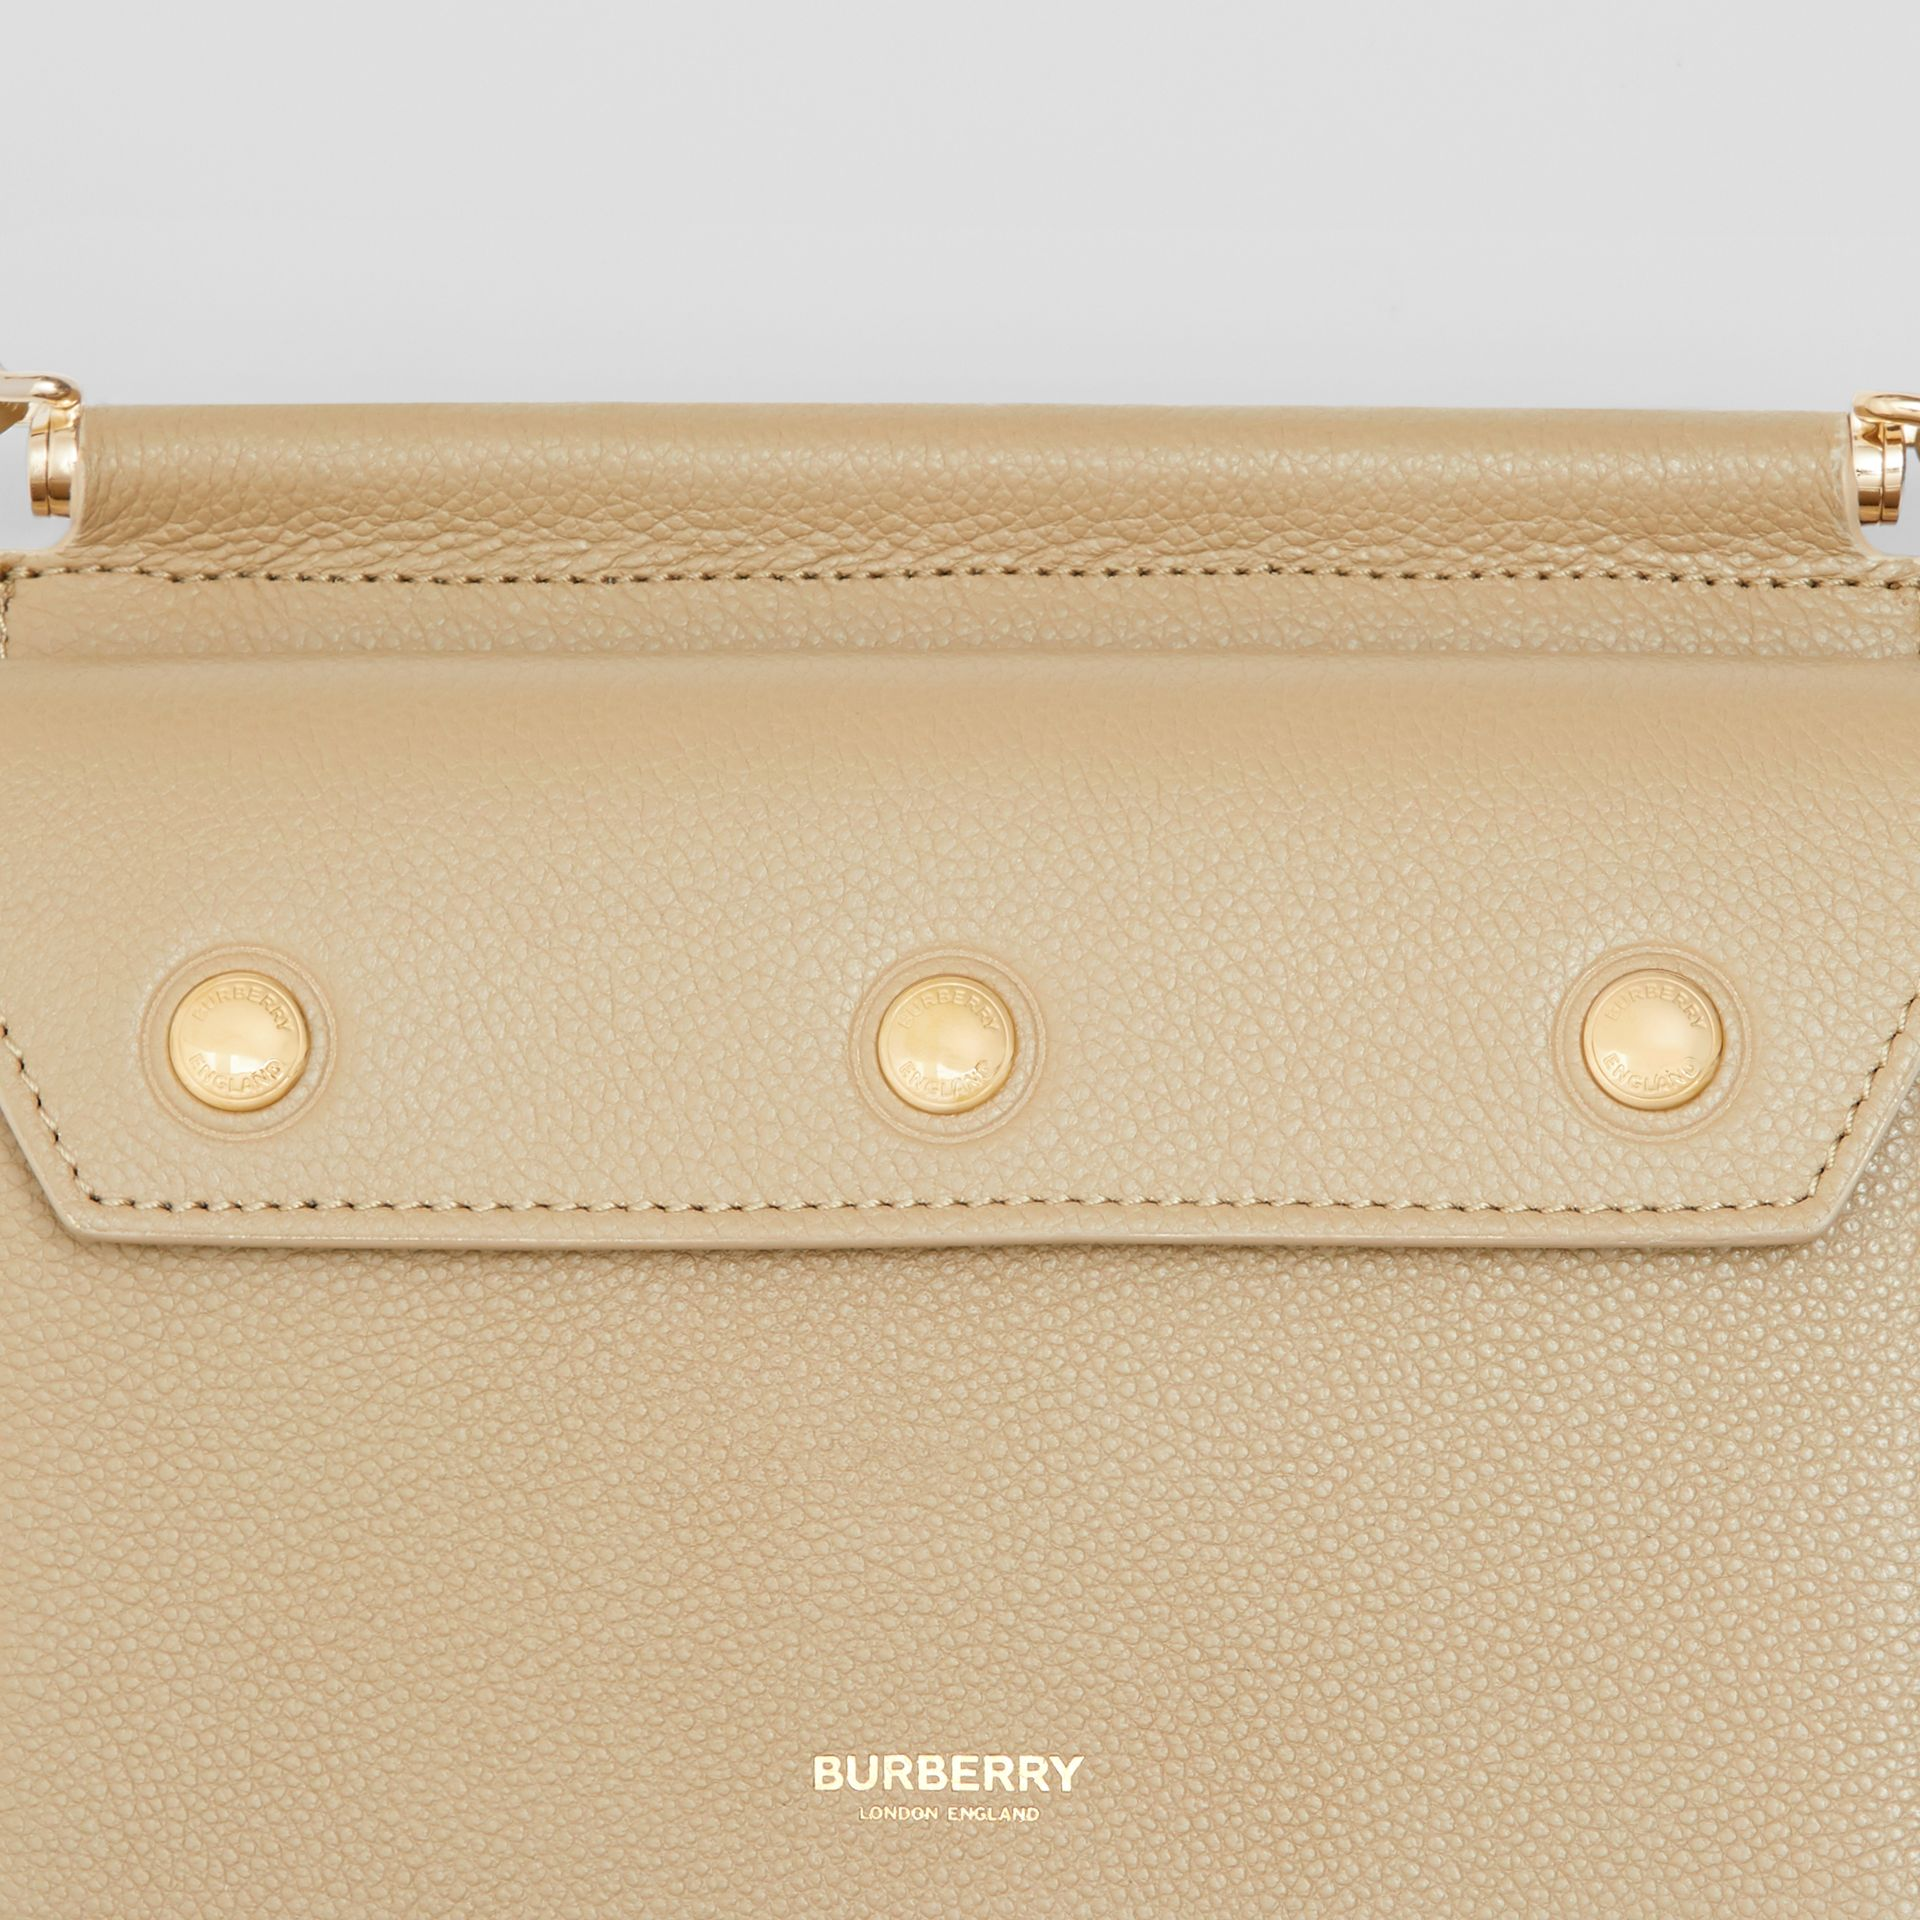 Mini Leather Title Bag with Pocket Detail in Honey - Women | Burberry United States - gallery image 1